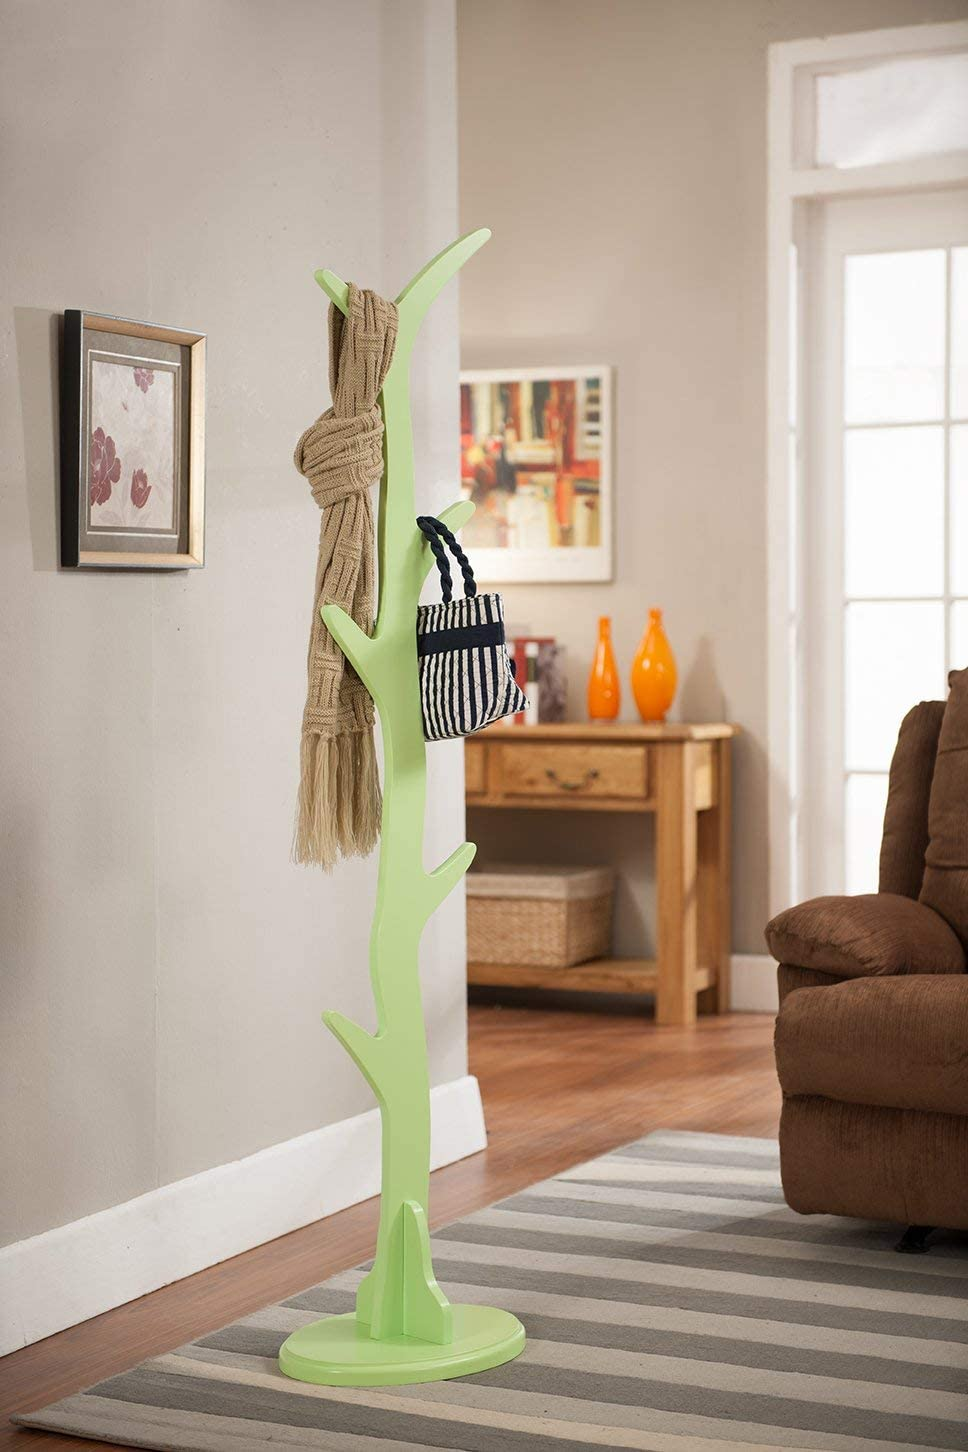 King s Brand Contemporary Tree Style Wood Coat and Hat Rack Stand, Mint Green